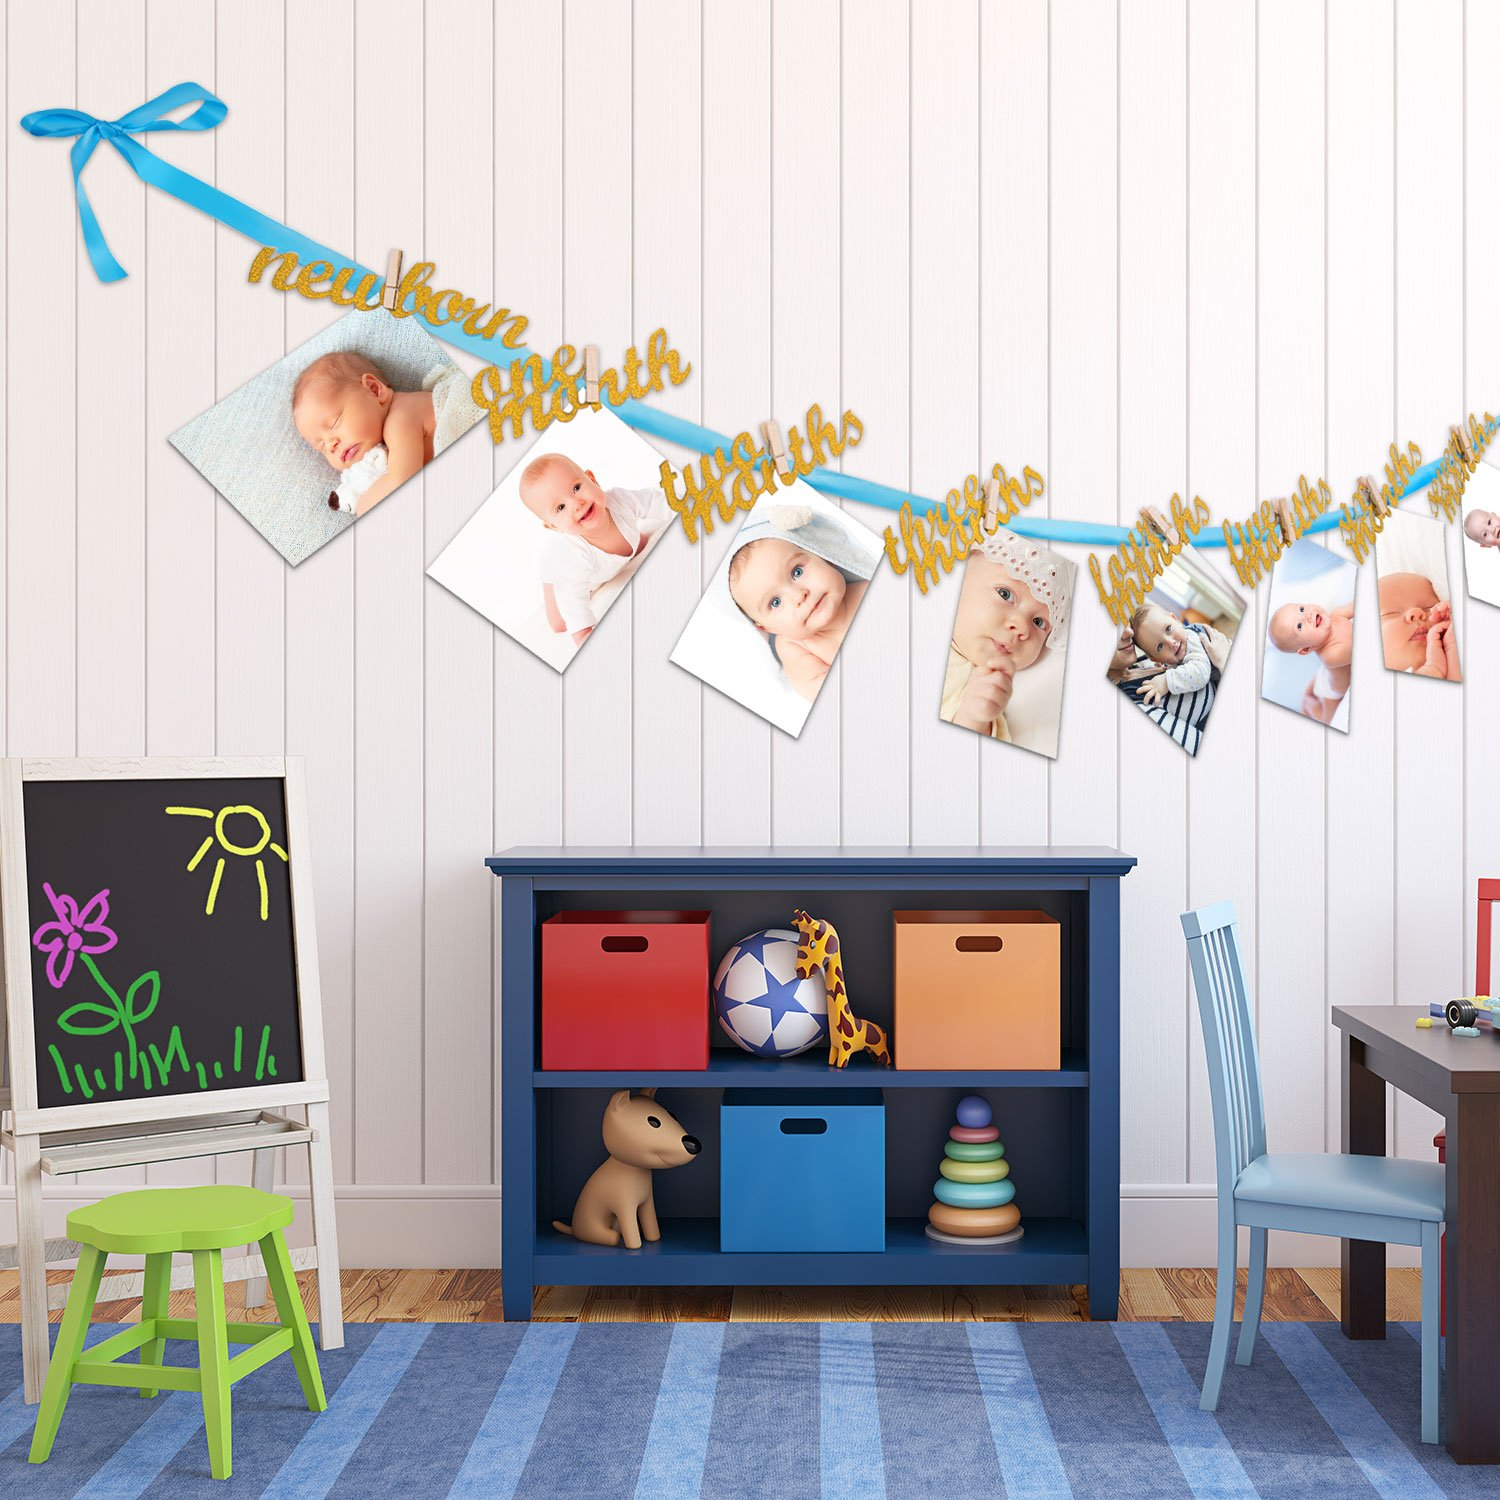 Baby Growth Record from Newborn to 12 Month Photo Bunting Party Wall Decor for Boys Bememo Blue and Gold First Birthday Decorations Banner